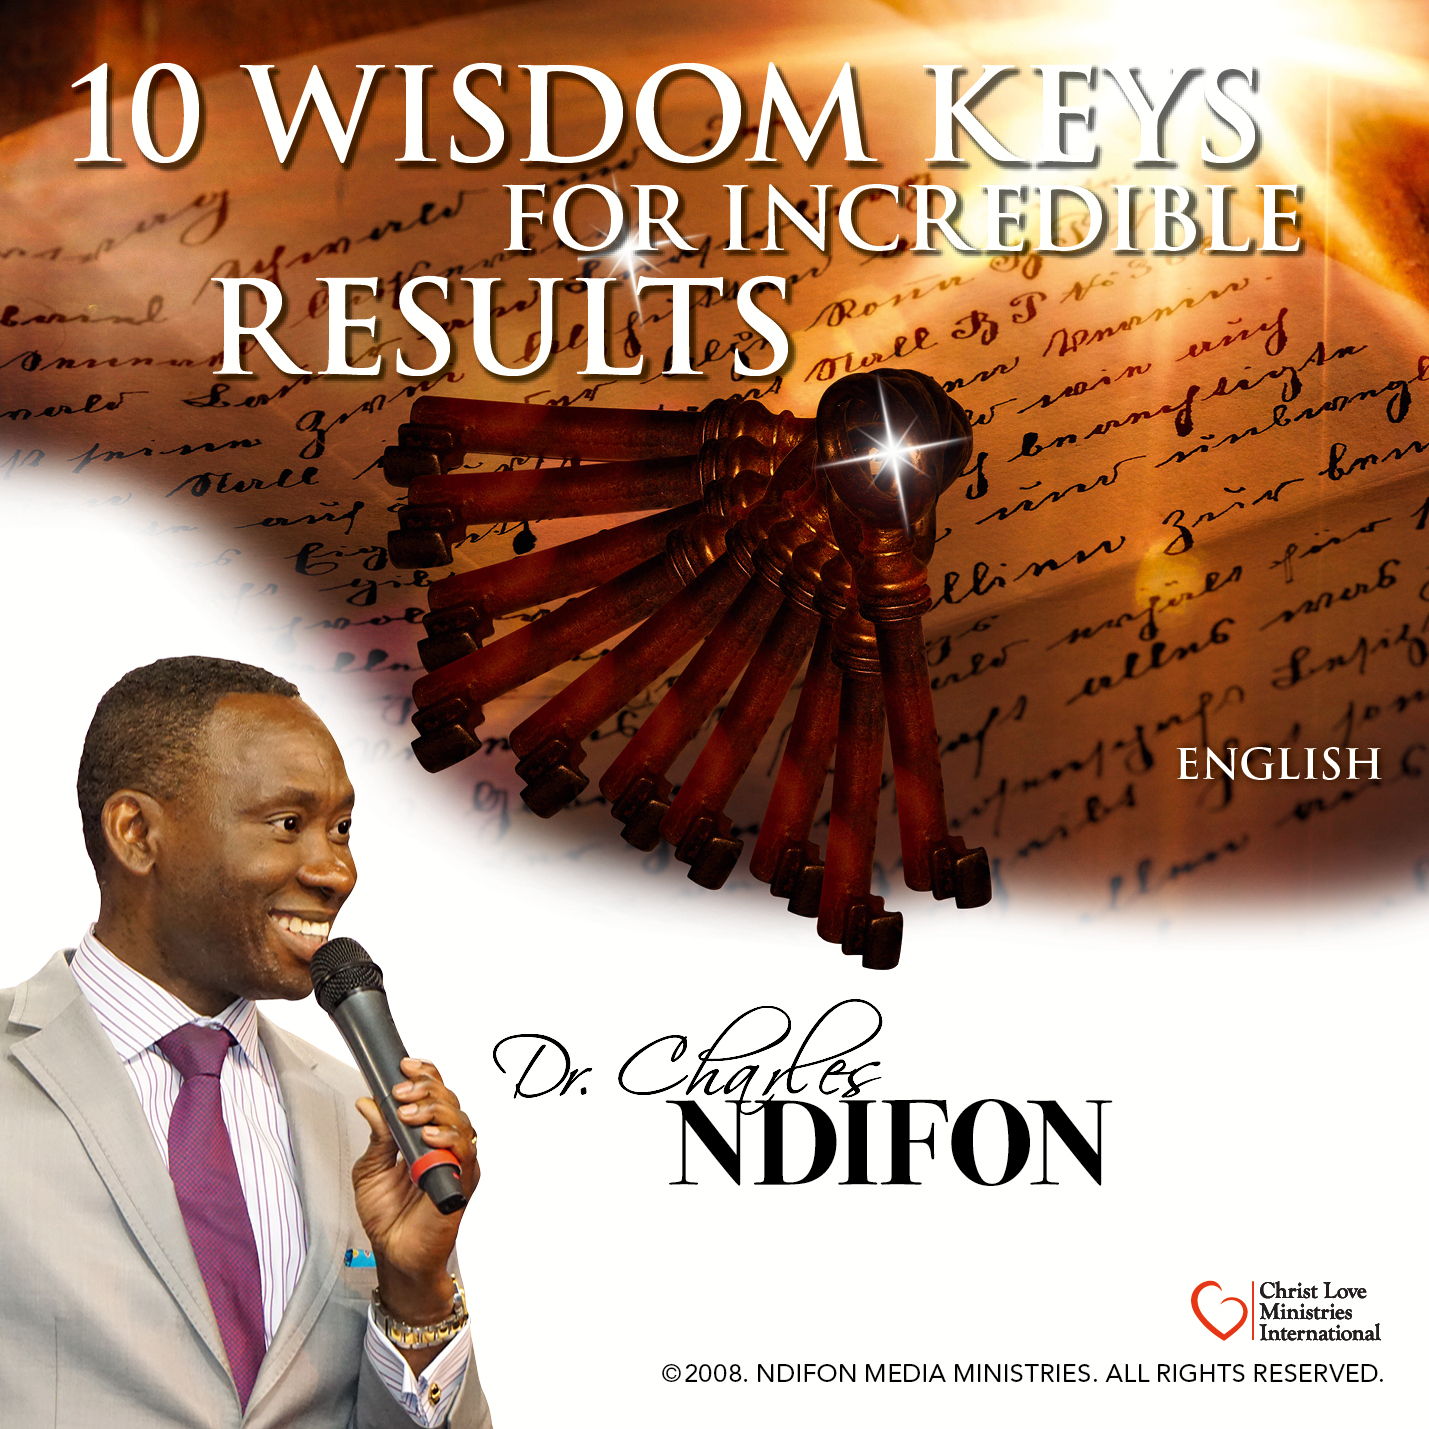 10 Wisdom Keys for Incredible Results